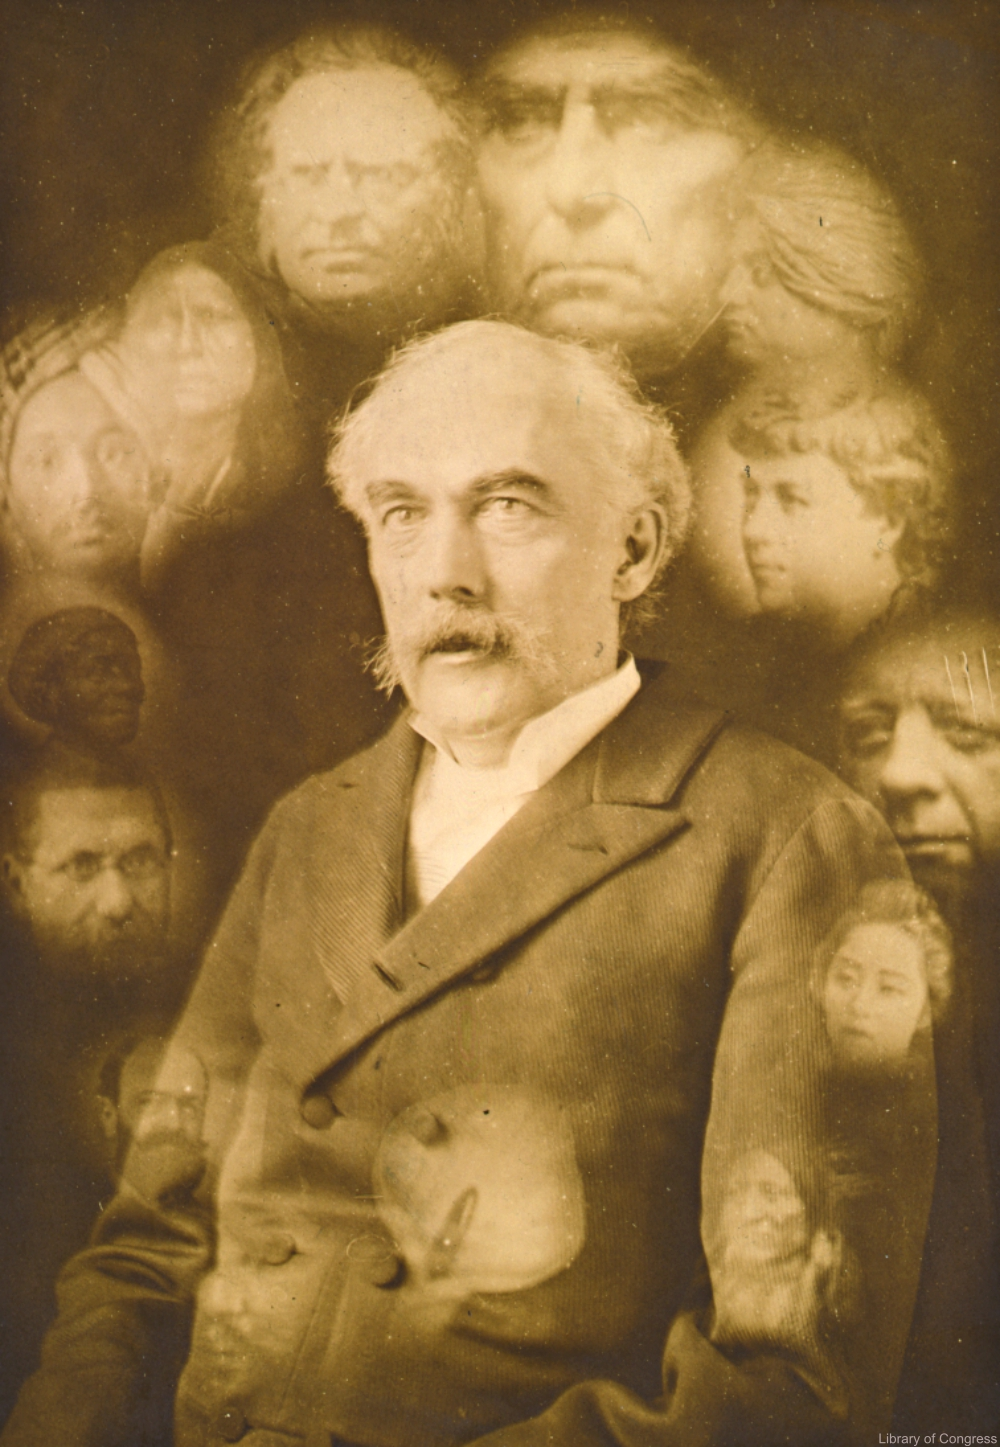 [Spirit photograph showing half-length portrait of John K. Hallowell, facing left, surrounded by super-imposed faces of fourteen deceased people